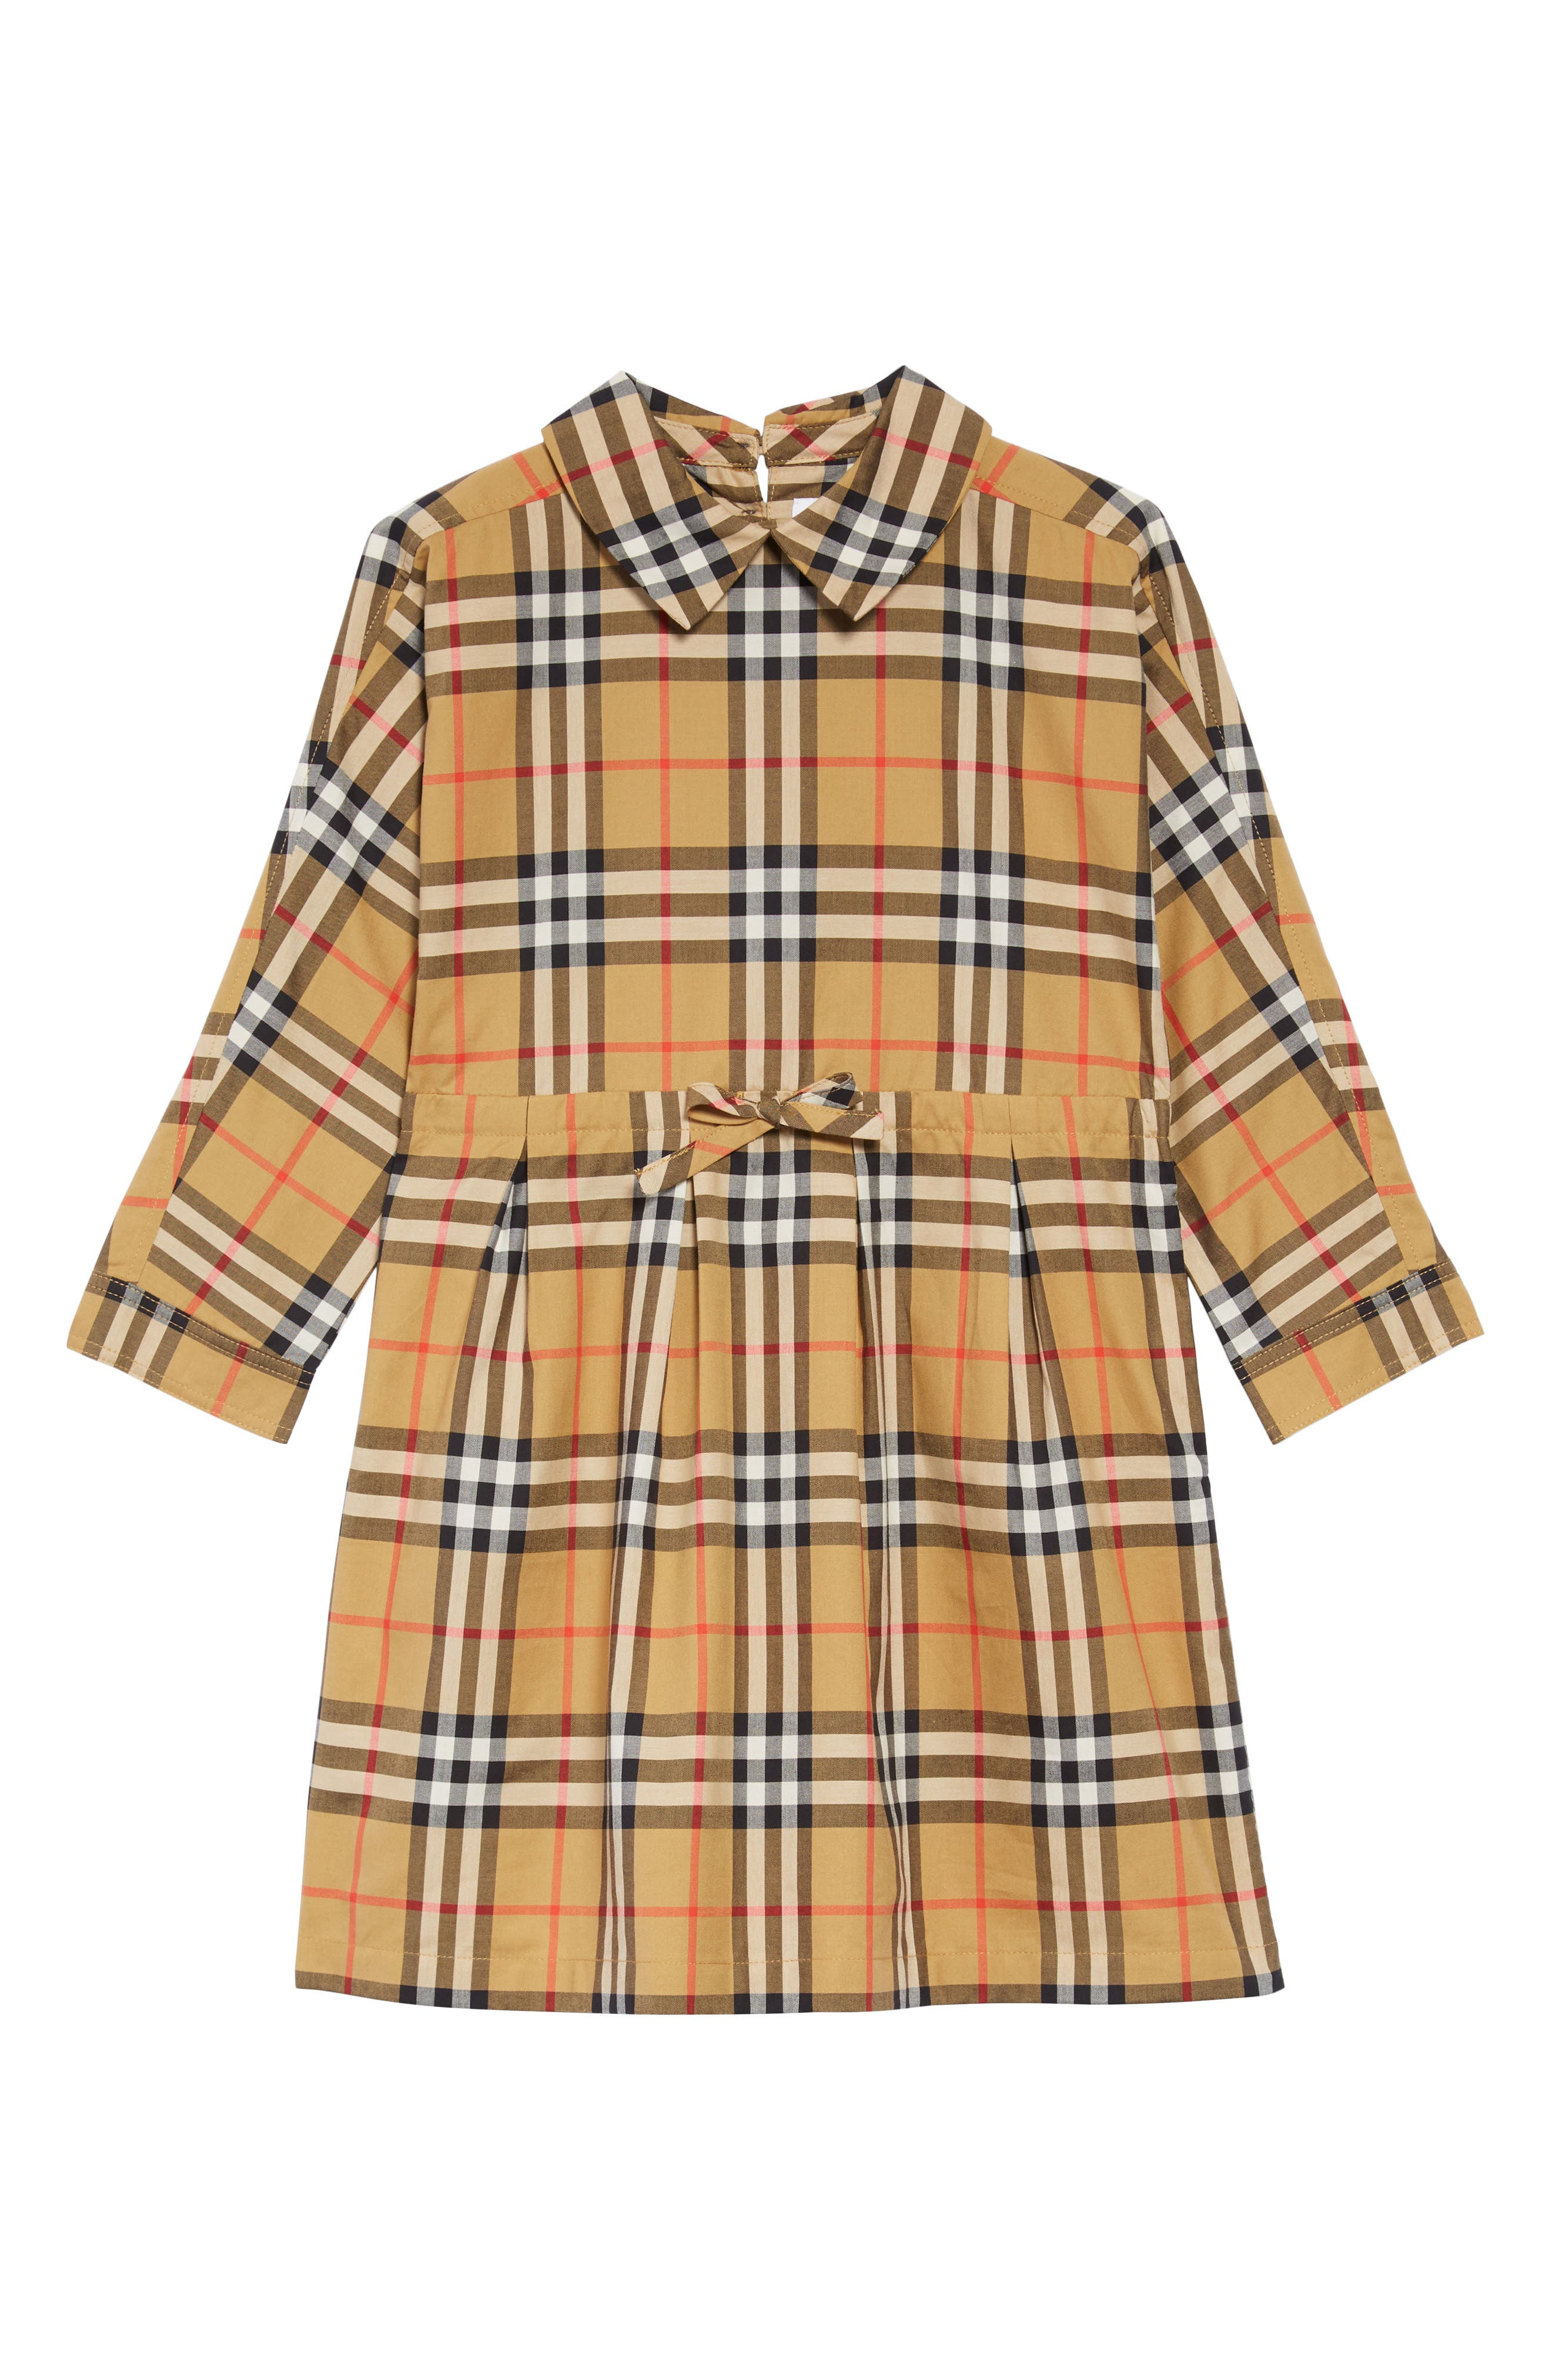 4dbe233cd424 Burberry for Kids  Clothing   Accessories